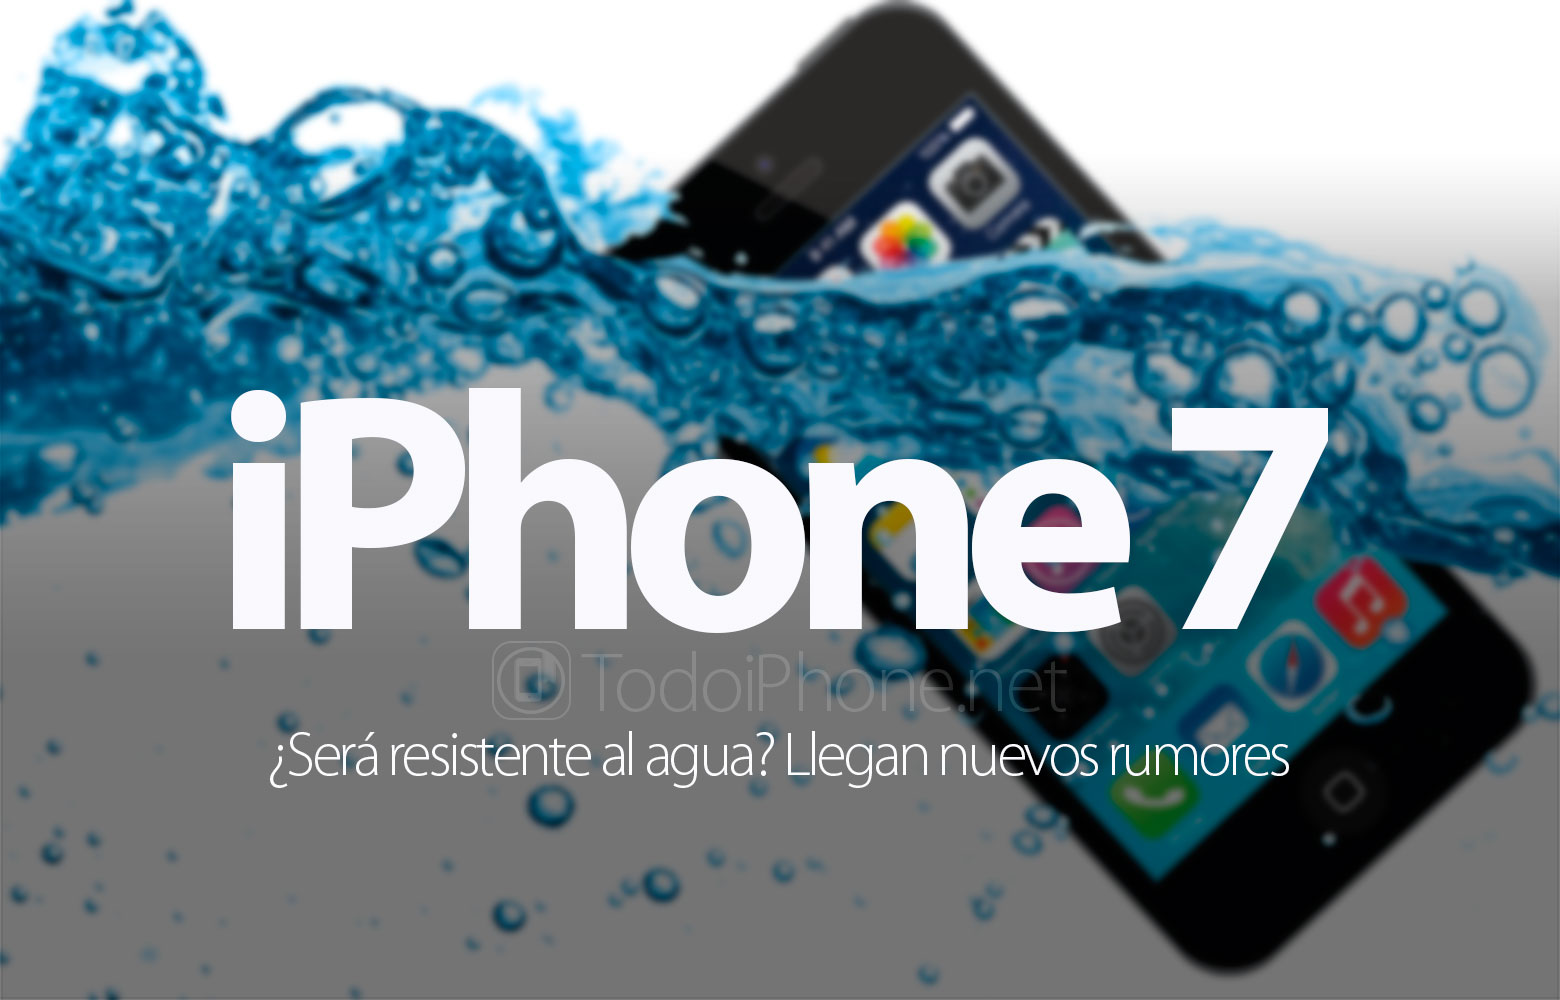 iphone-7-rumores-resistencia-agua